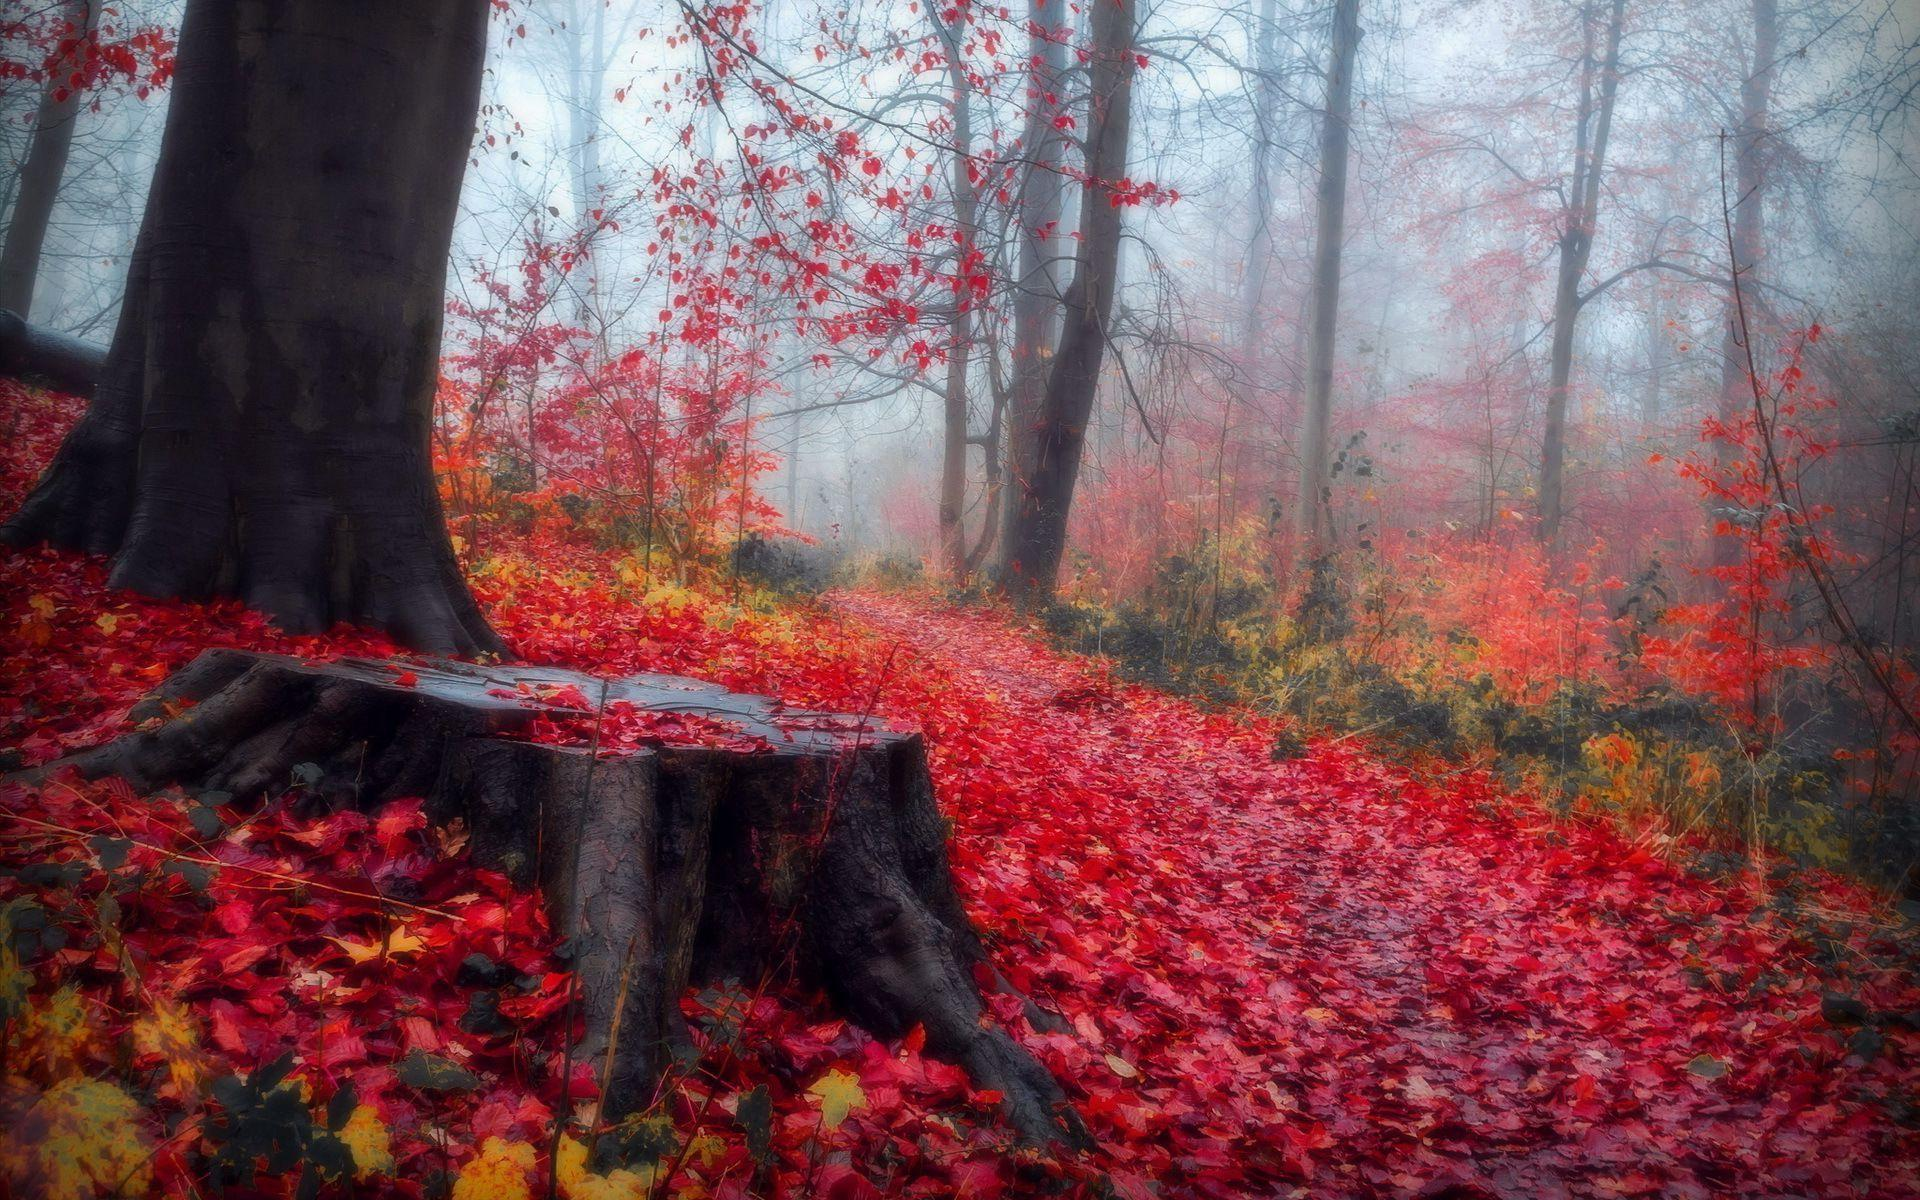 Fall Autumn Computer Wallpaper Hd Red Leaves In The Autumn Forest Wallpaper Download